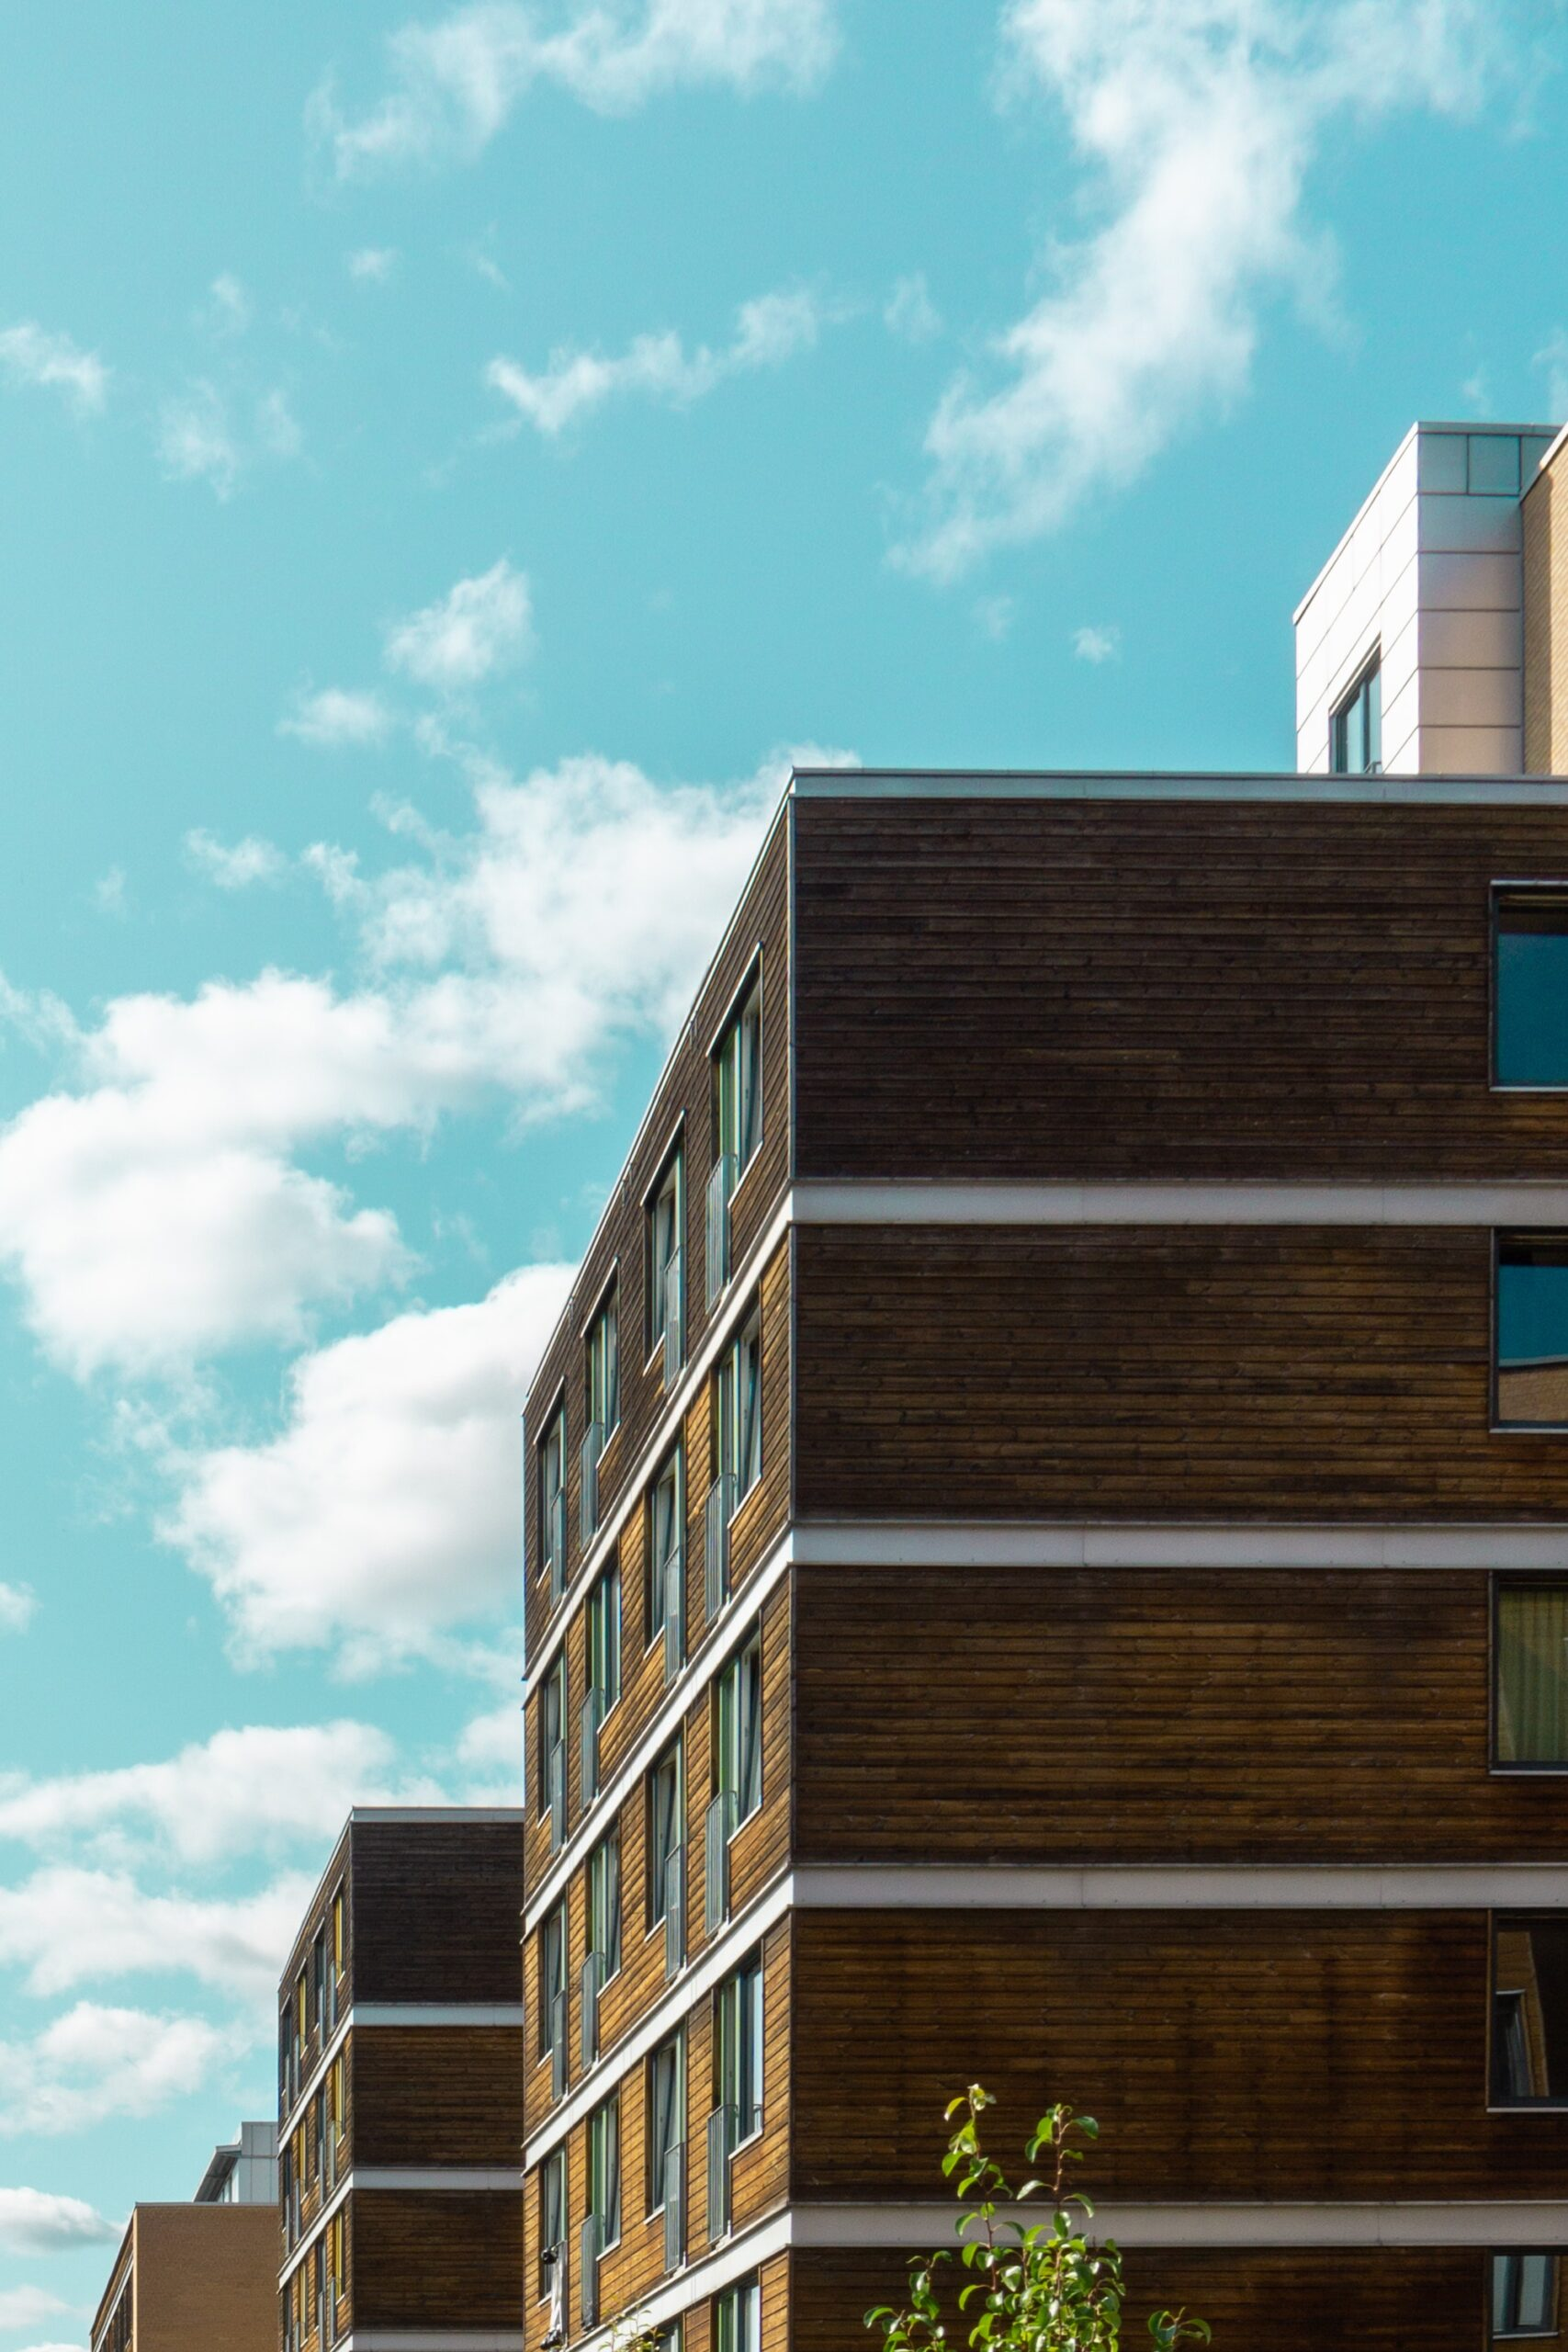 The Building Safety Fund is set up to support the replacement of unsafe cladding